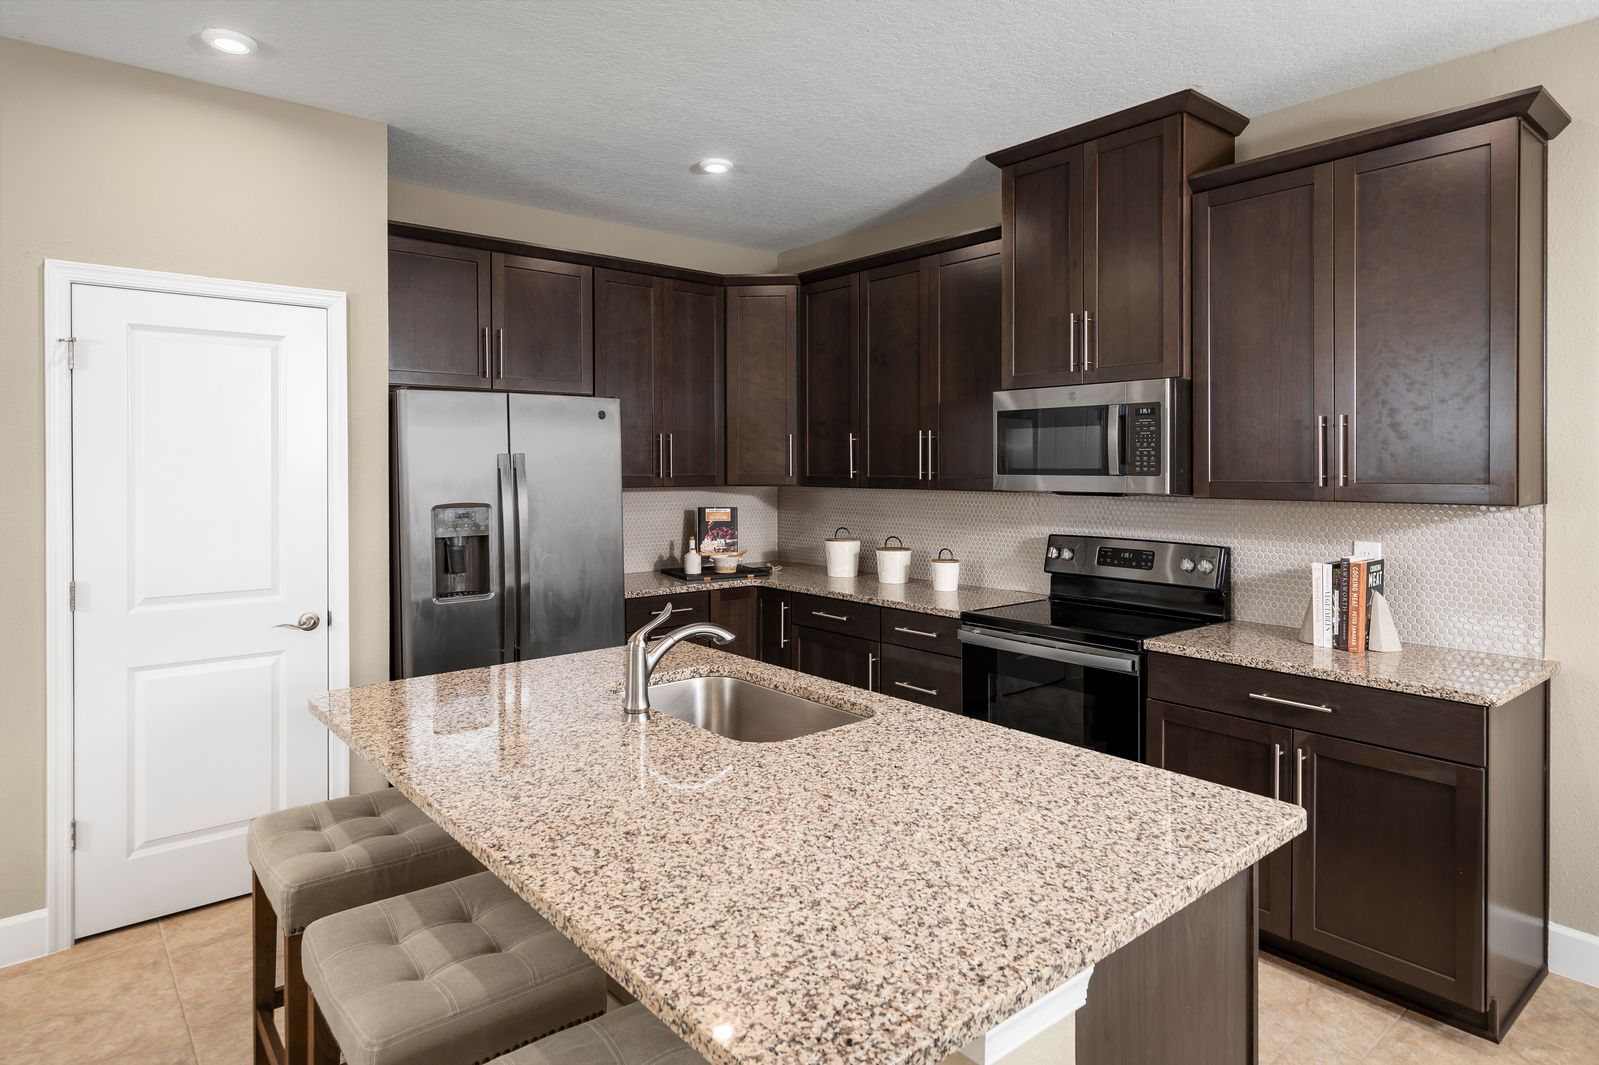 Kitchen featured in the Adeline By Ryan Homes in Orlando, FL